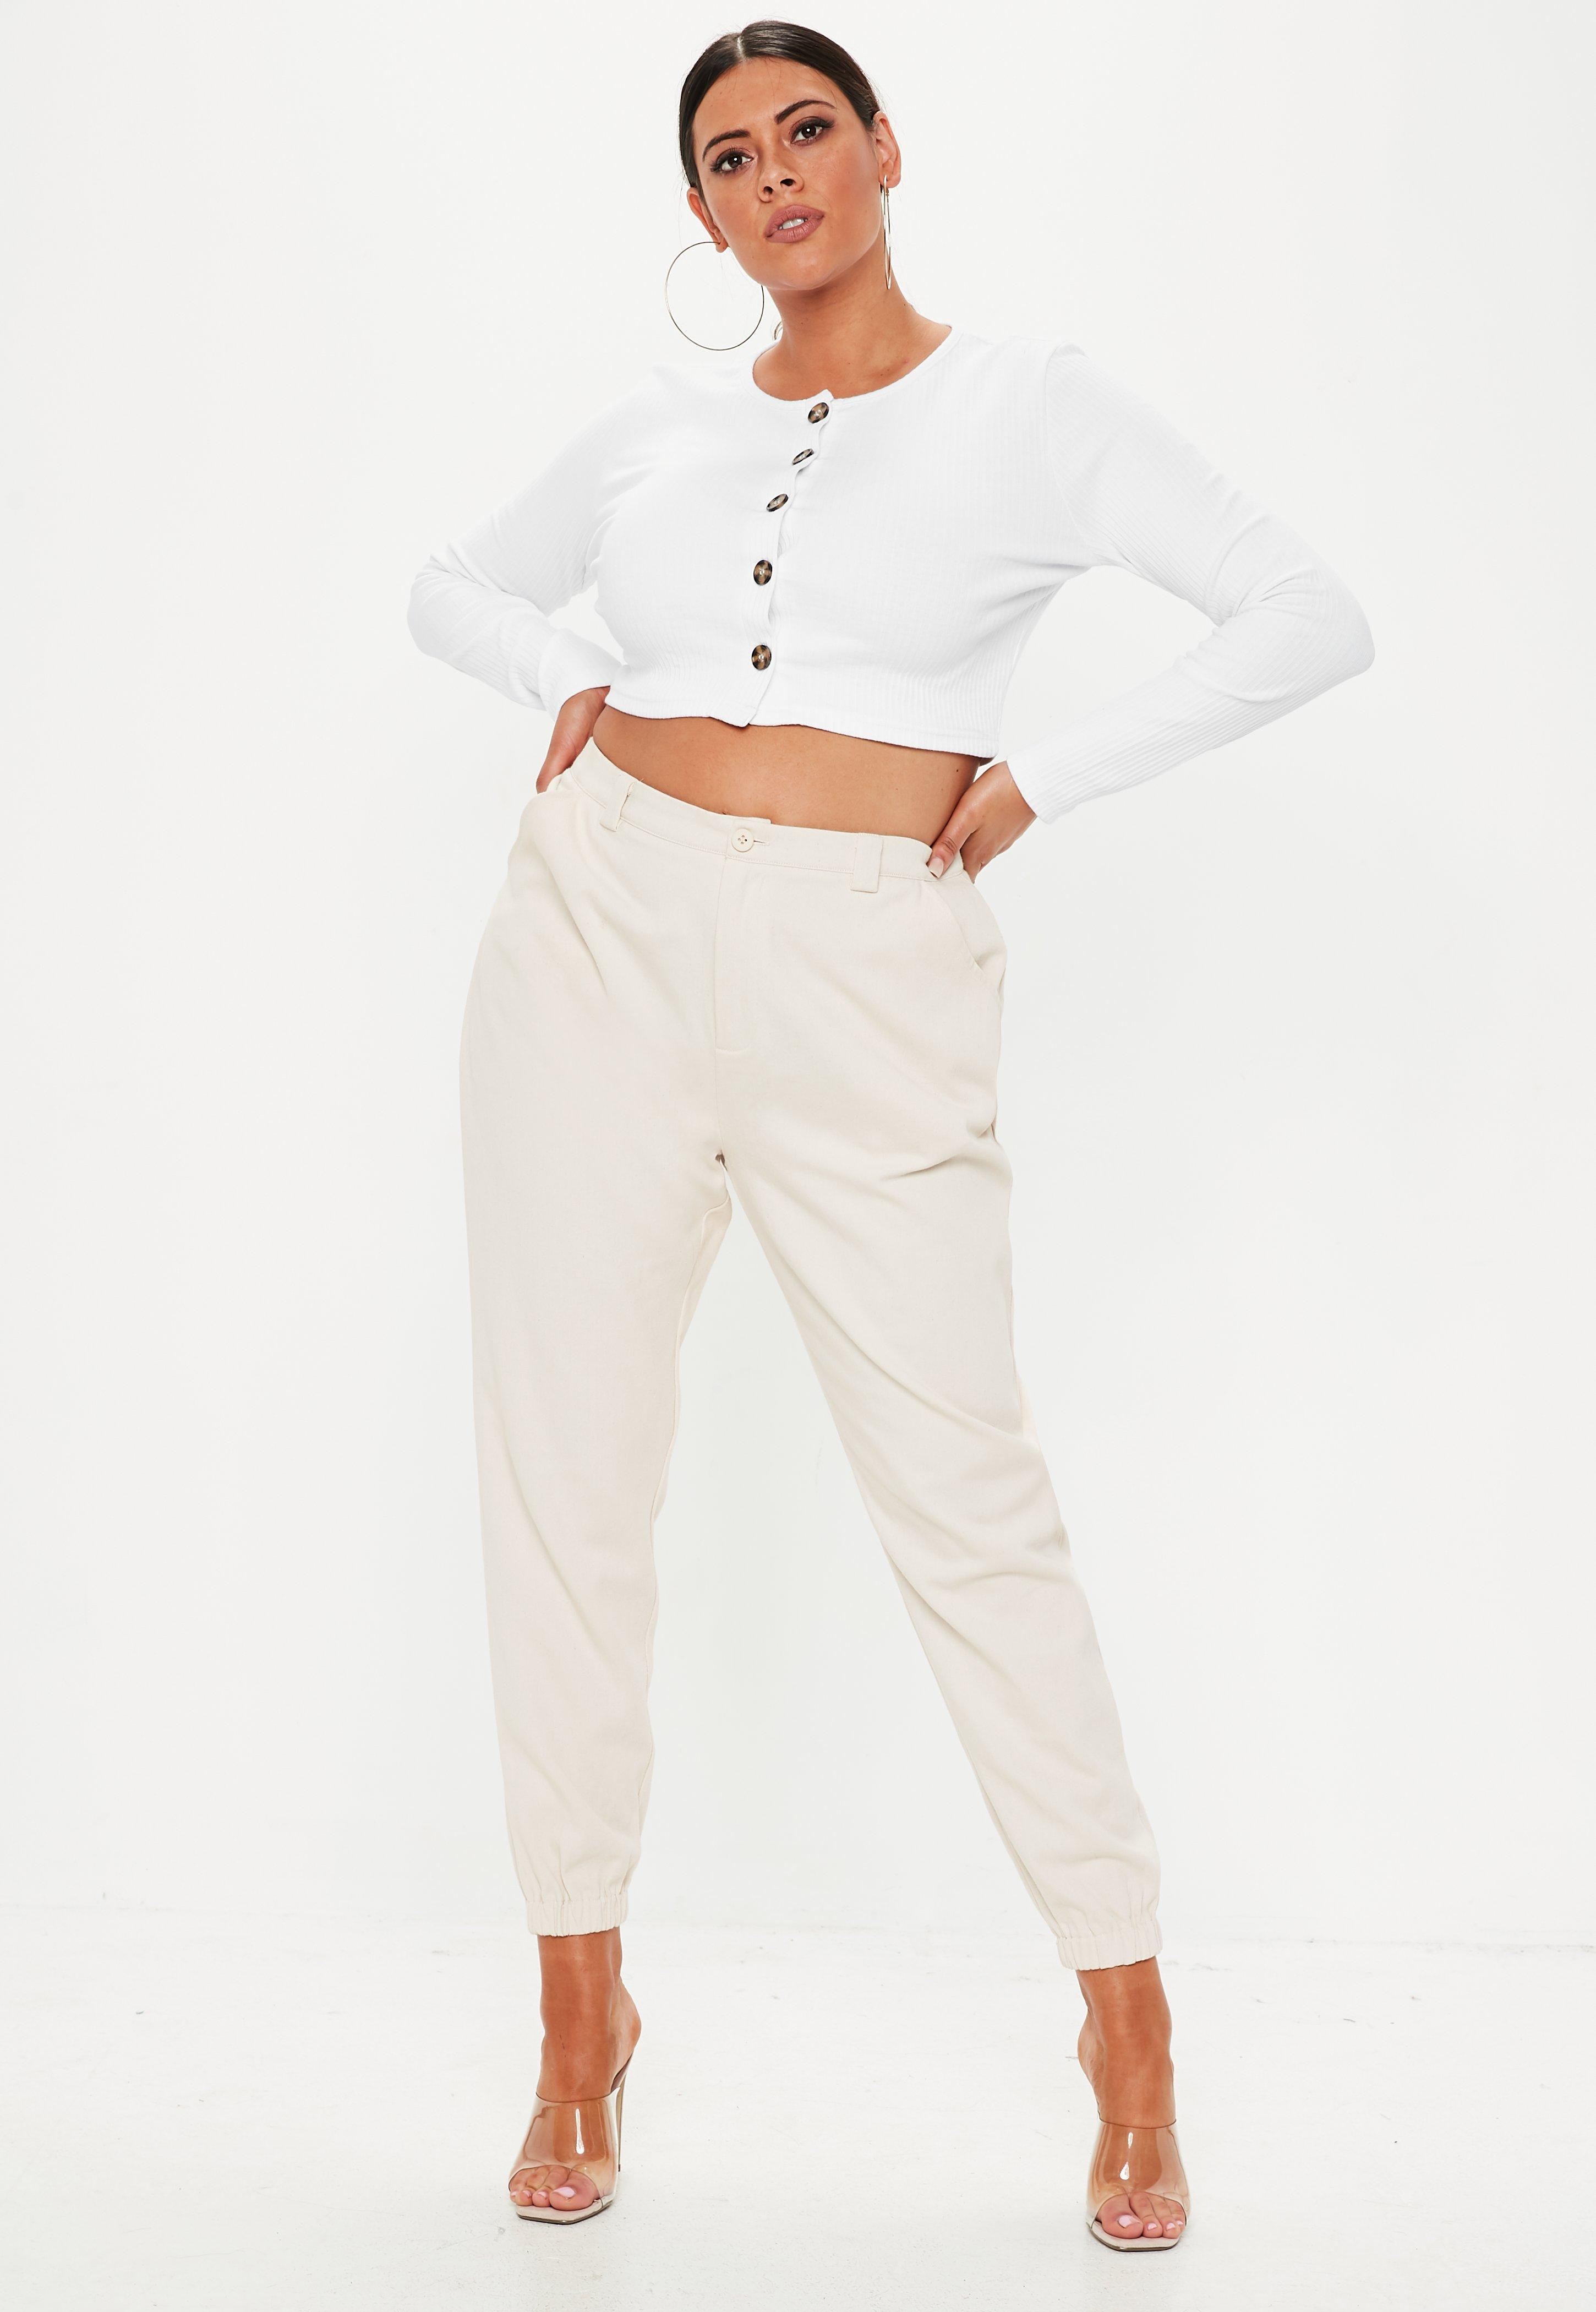 c14796f996f41 Missguided - Plus Size White Ribbed Button Front Long Sleeve Crop Top - Lyst.  View fullscreen